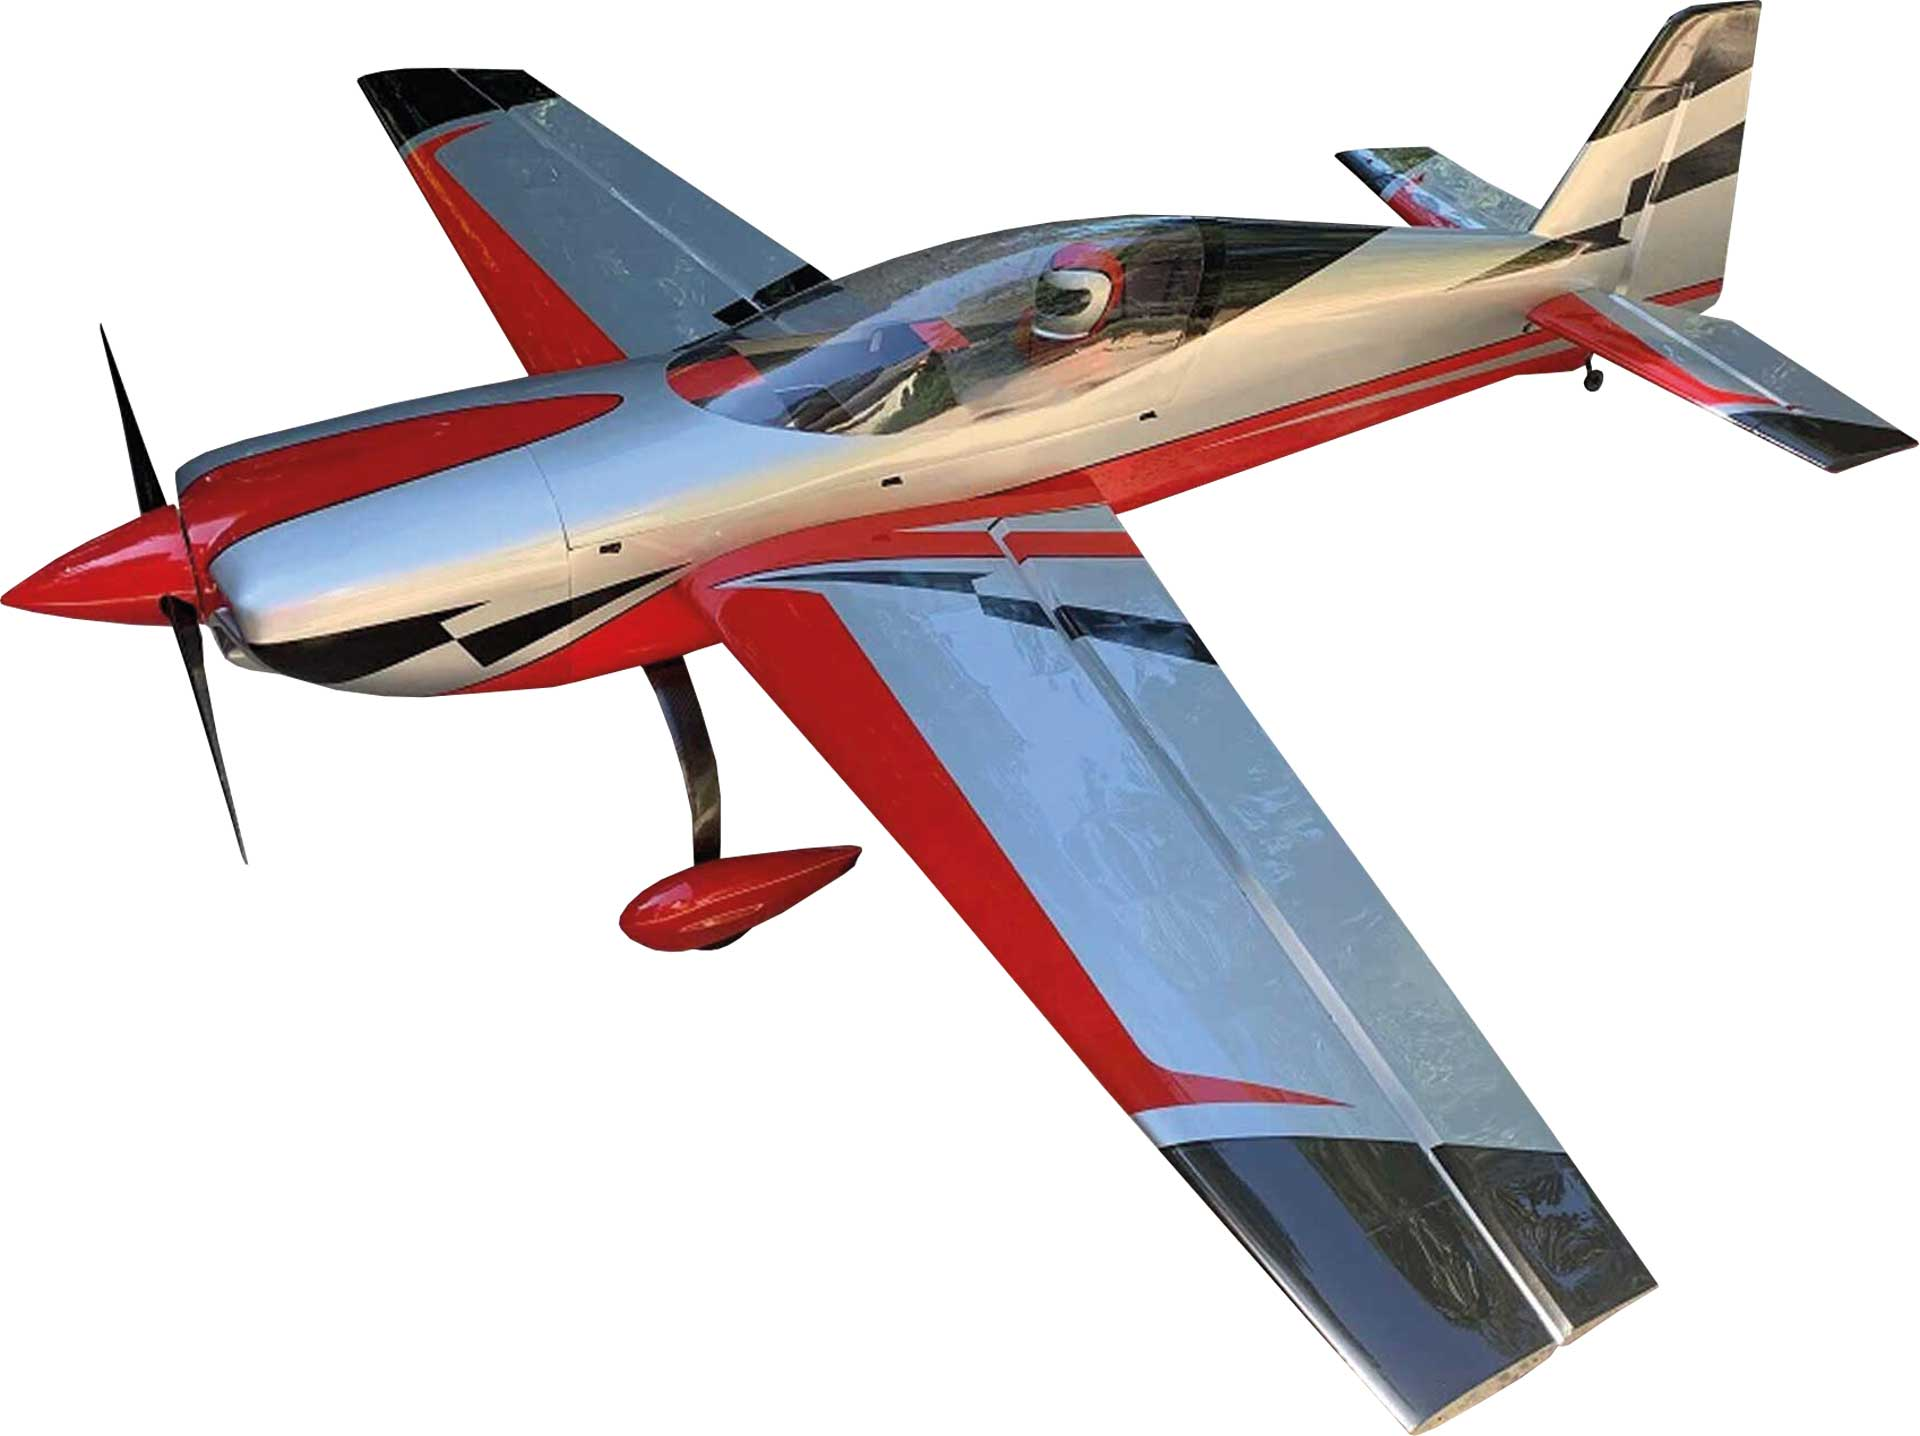 "EXTREMEFLIGHT-RC EXTRA NG 104"" Red/Silver ARF"